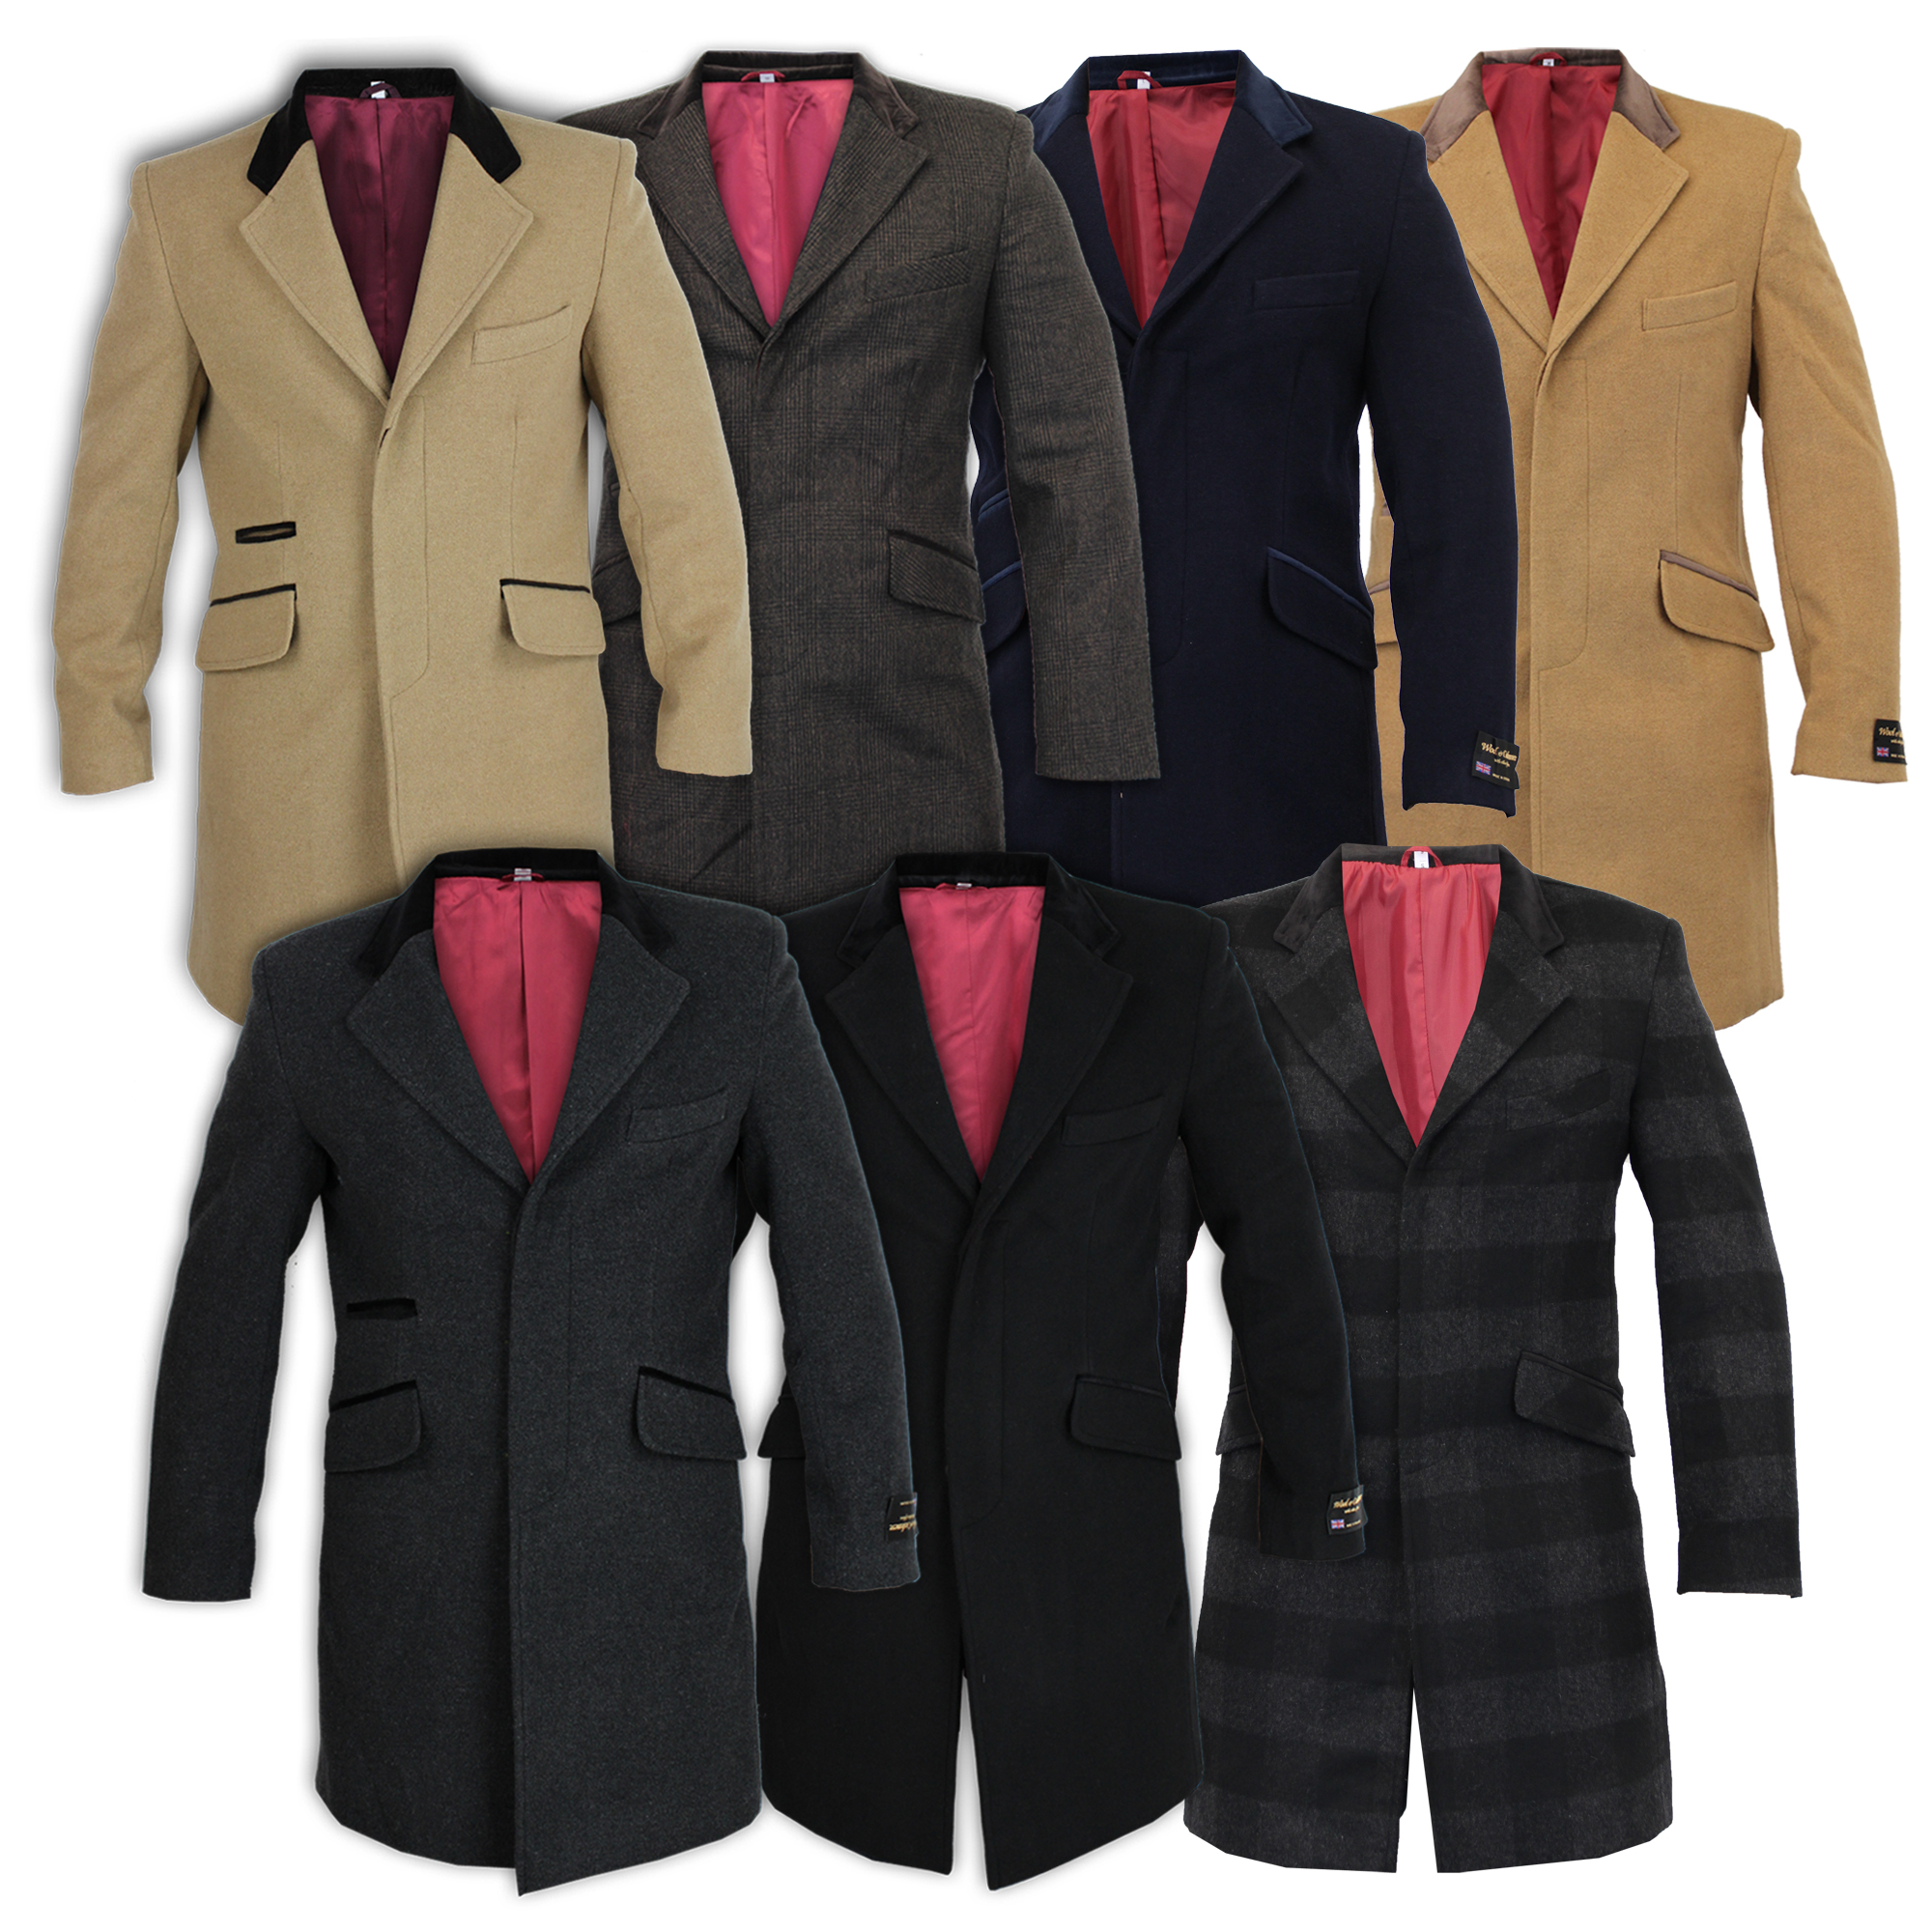 mens coat wool jacket cashmere casual outerwear overcoat. Black Bedroom Furniture Sets. Home Design Ideas